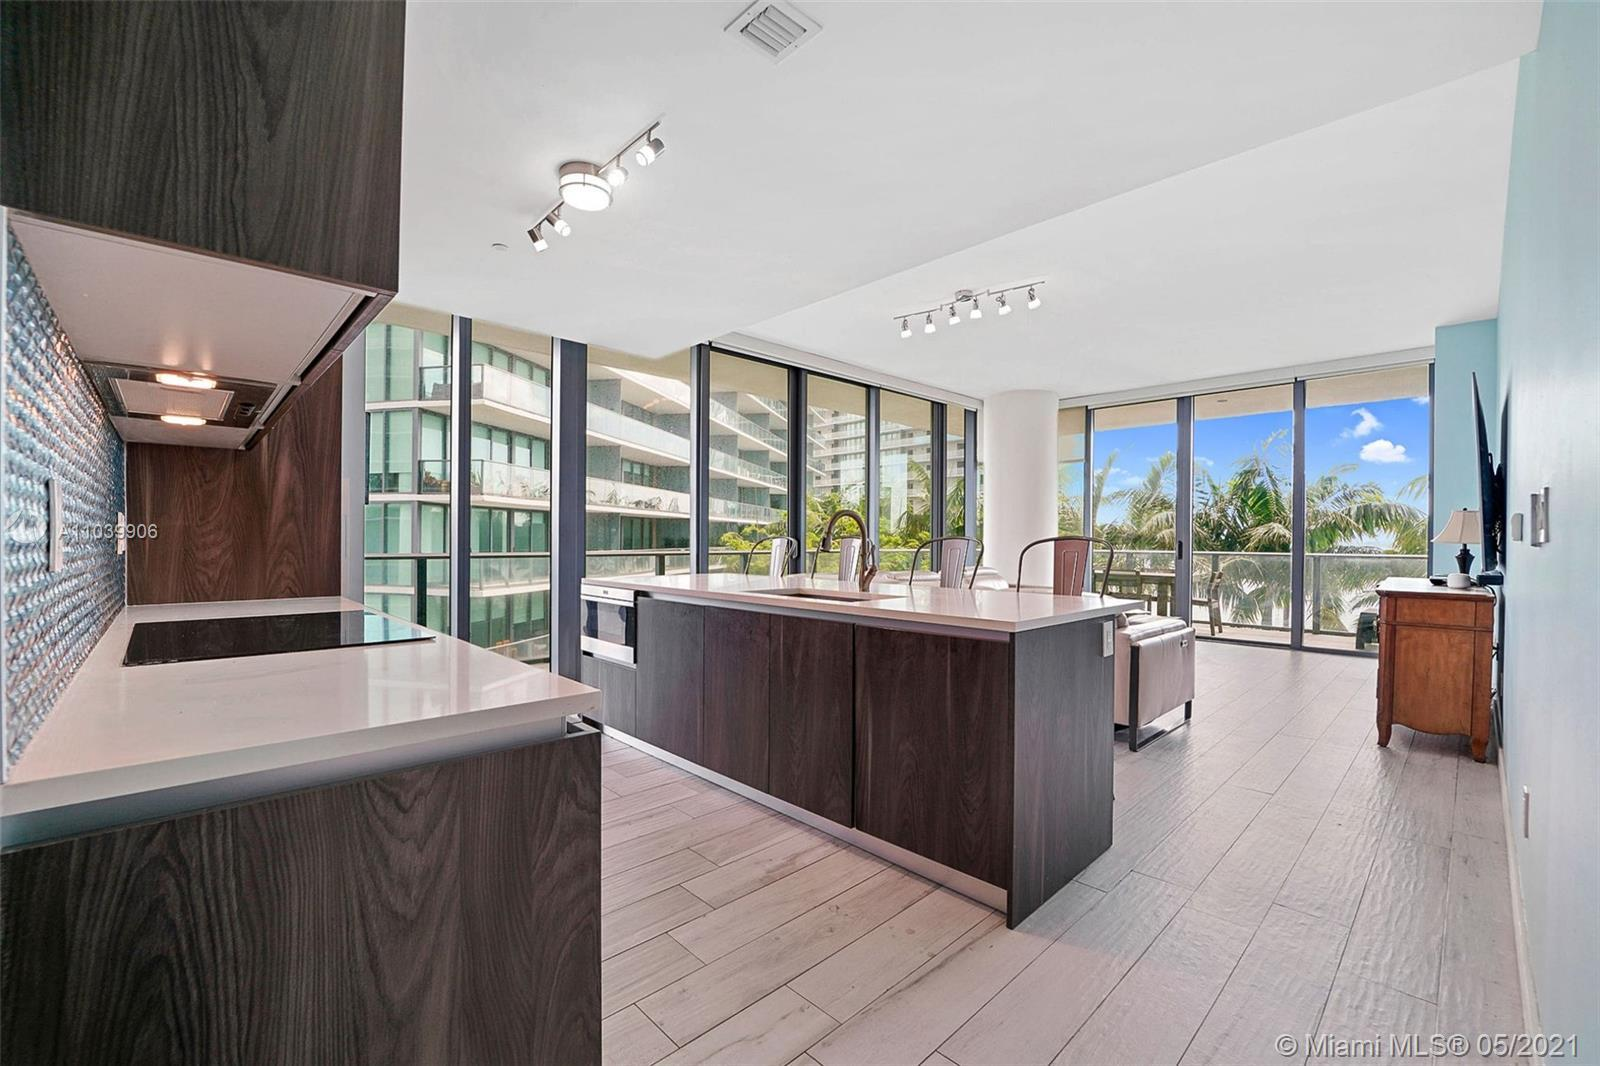 GranParaiso Residence 707. LOWEST PRICED 3 beds in the building ! Perfectly located in the Heart of